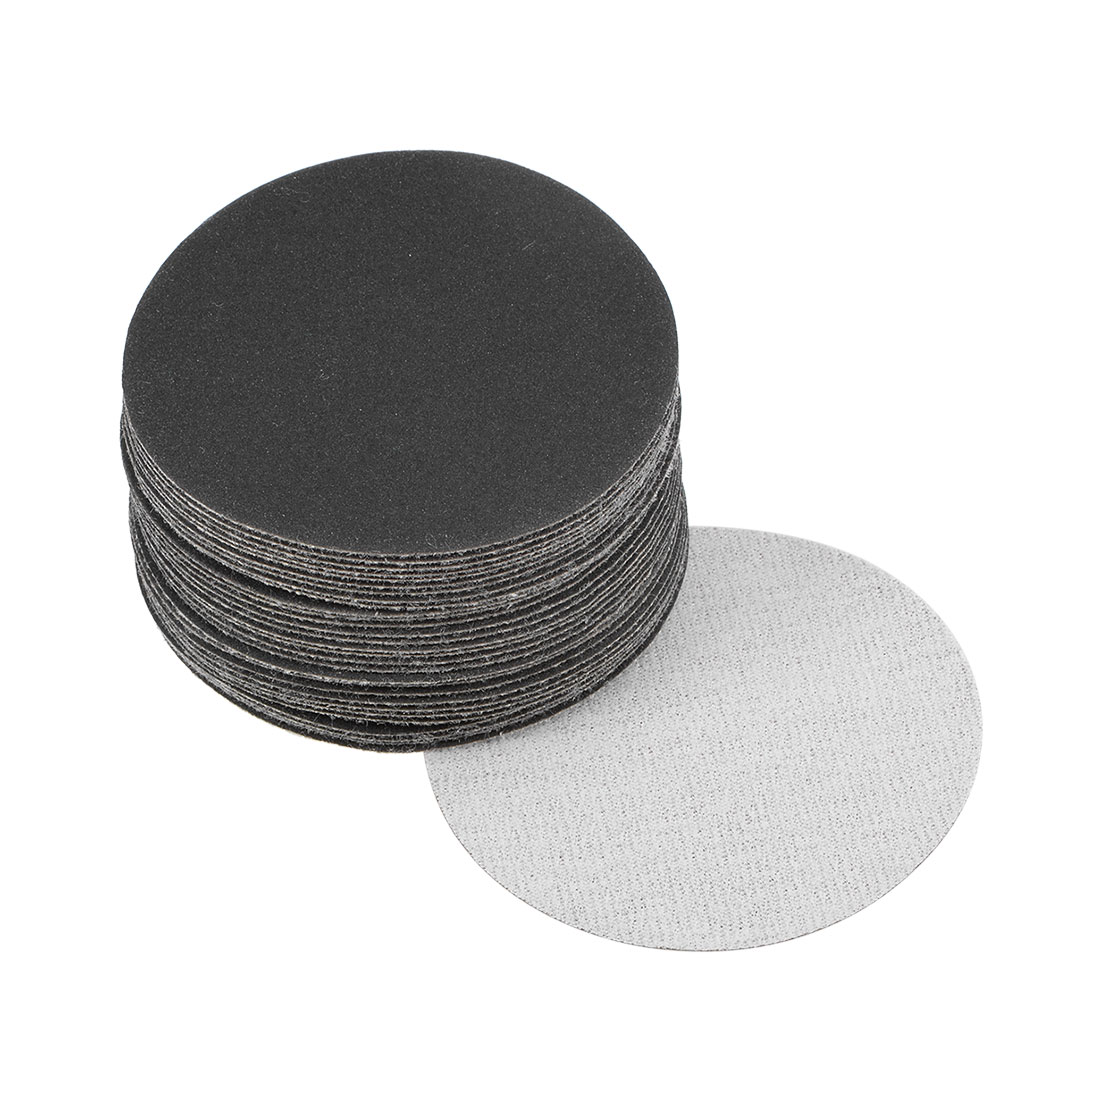 3 inch Wet Dry Discs 320 Grit Hook and Loop Sanding Disc Silicon Carbide 30pcs